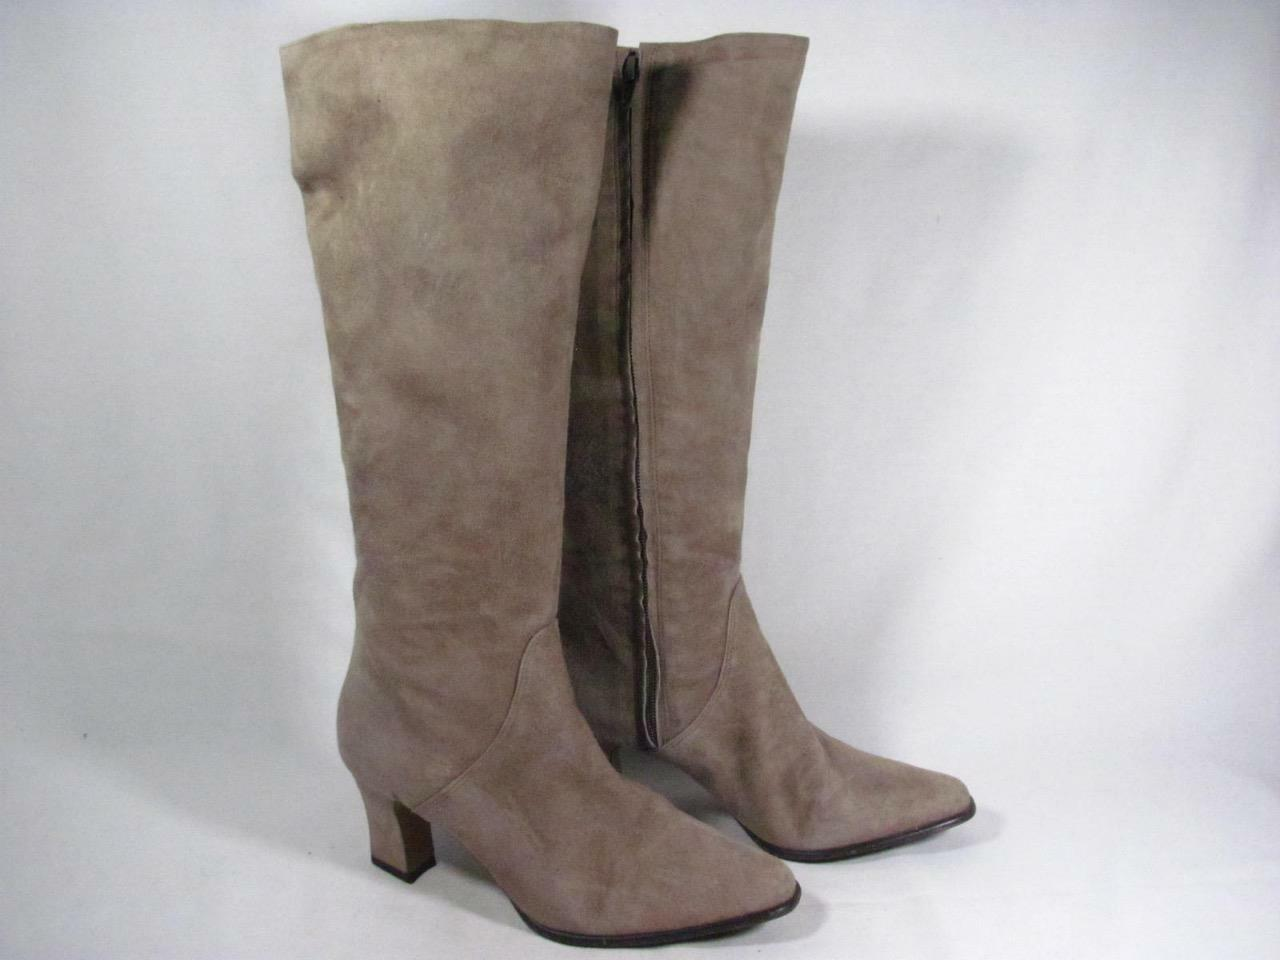 Vintage Bandolino Knee High Boot Women size 7.5 Taupe Suede